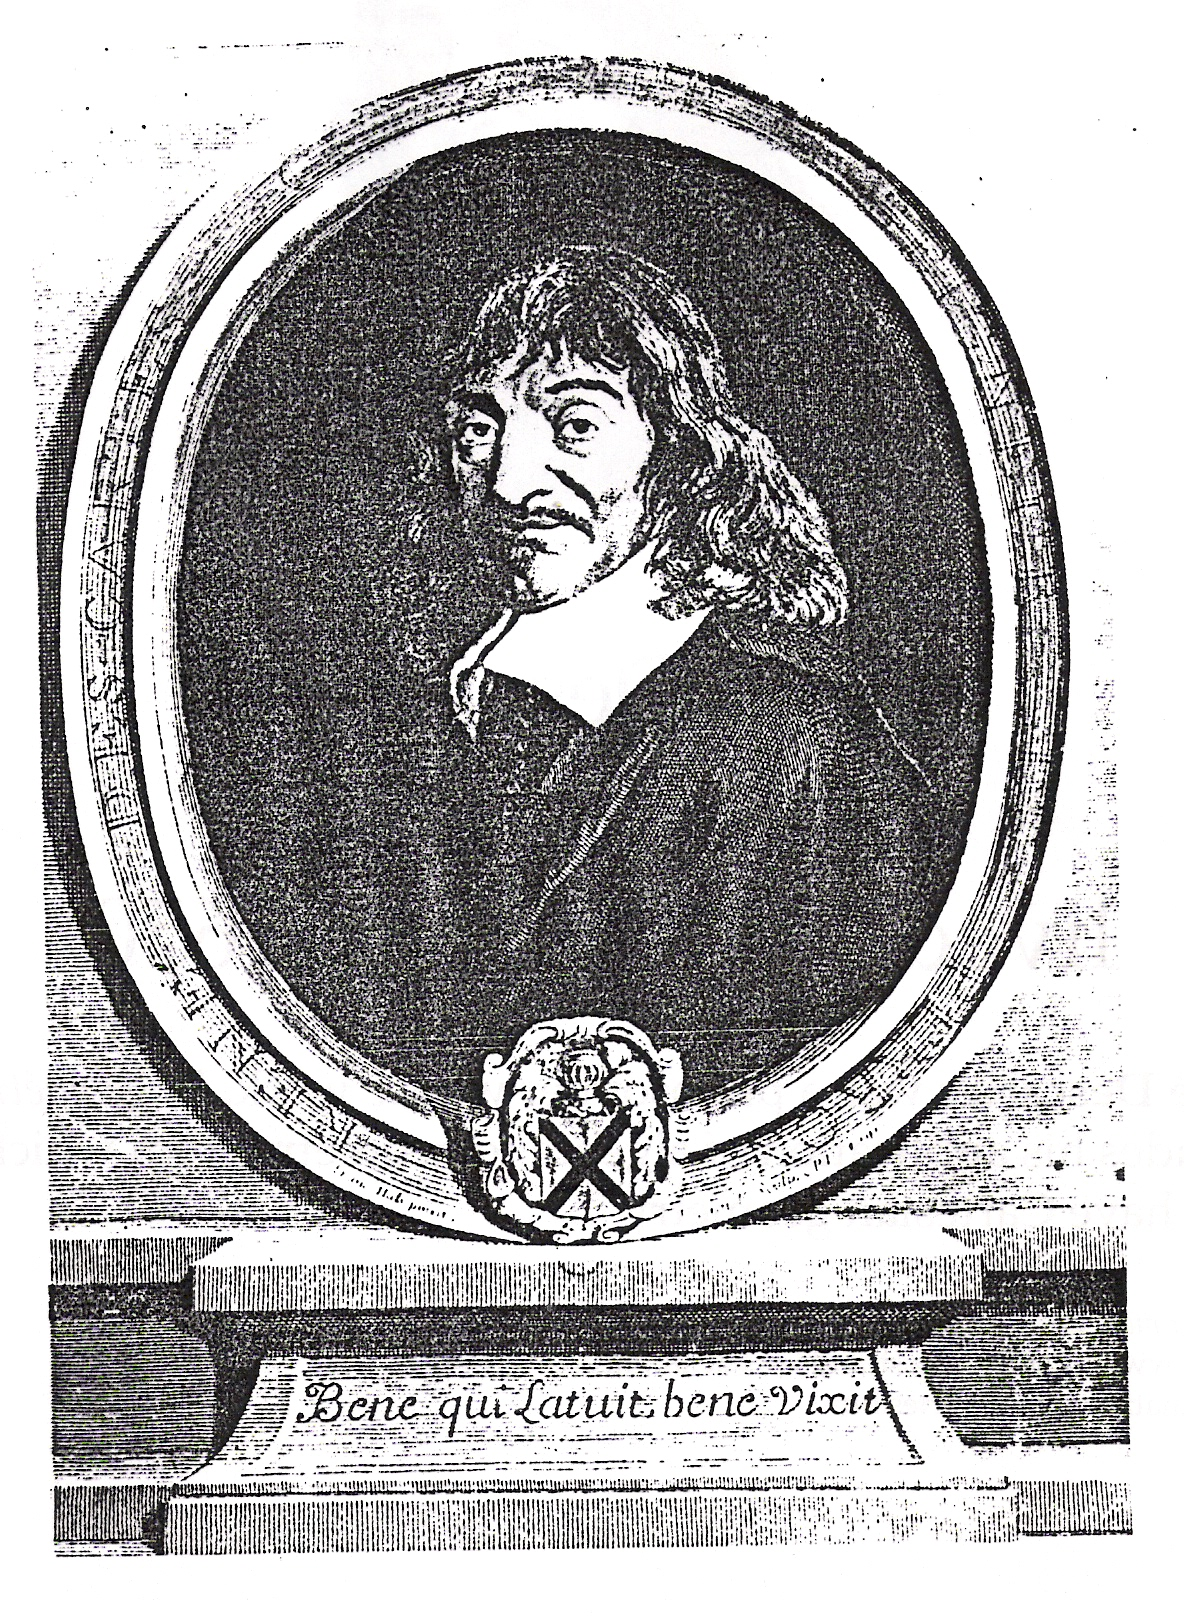 descartes discourse on method essay Discourse on the method is descartes' attempt to explain his method of reasoning through even the most difficult of problems he illustrates the development of this method through brief autobiographical sketches interspersed with philosophical arguments.